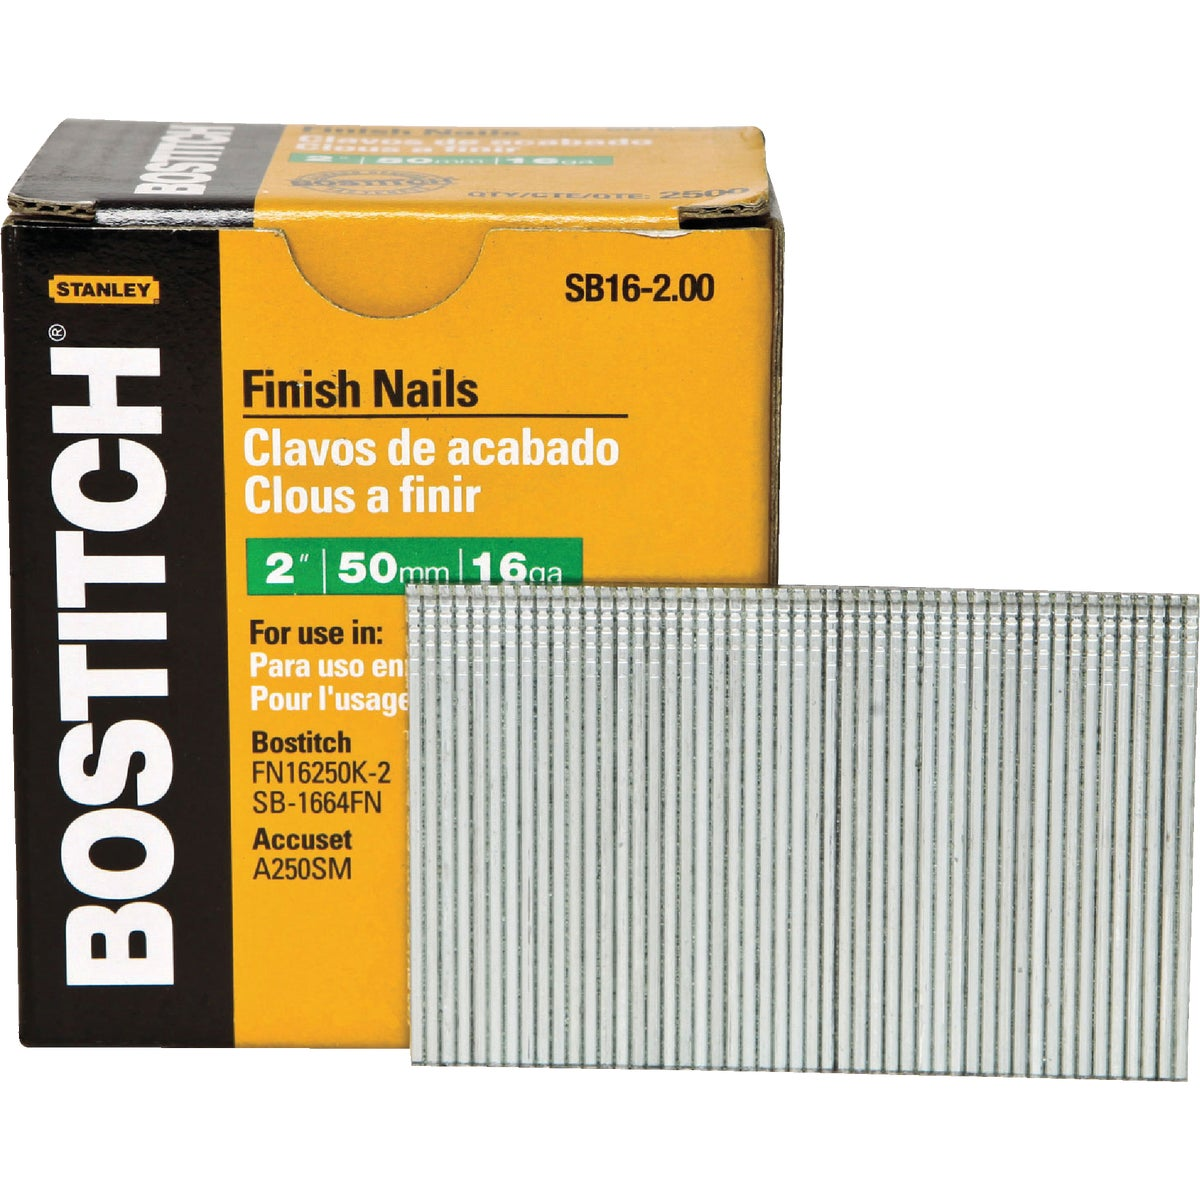 "2"" 16GA FINISH NAIL - SB16-2.00 by Stanley Bostitch"